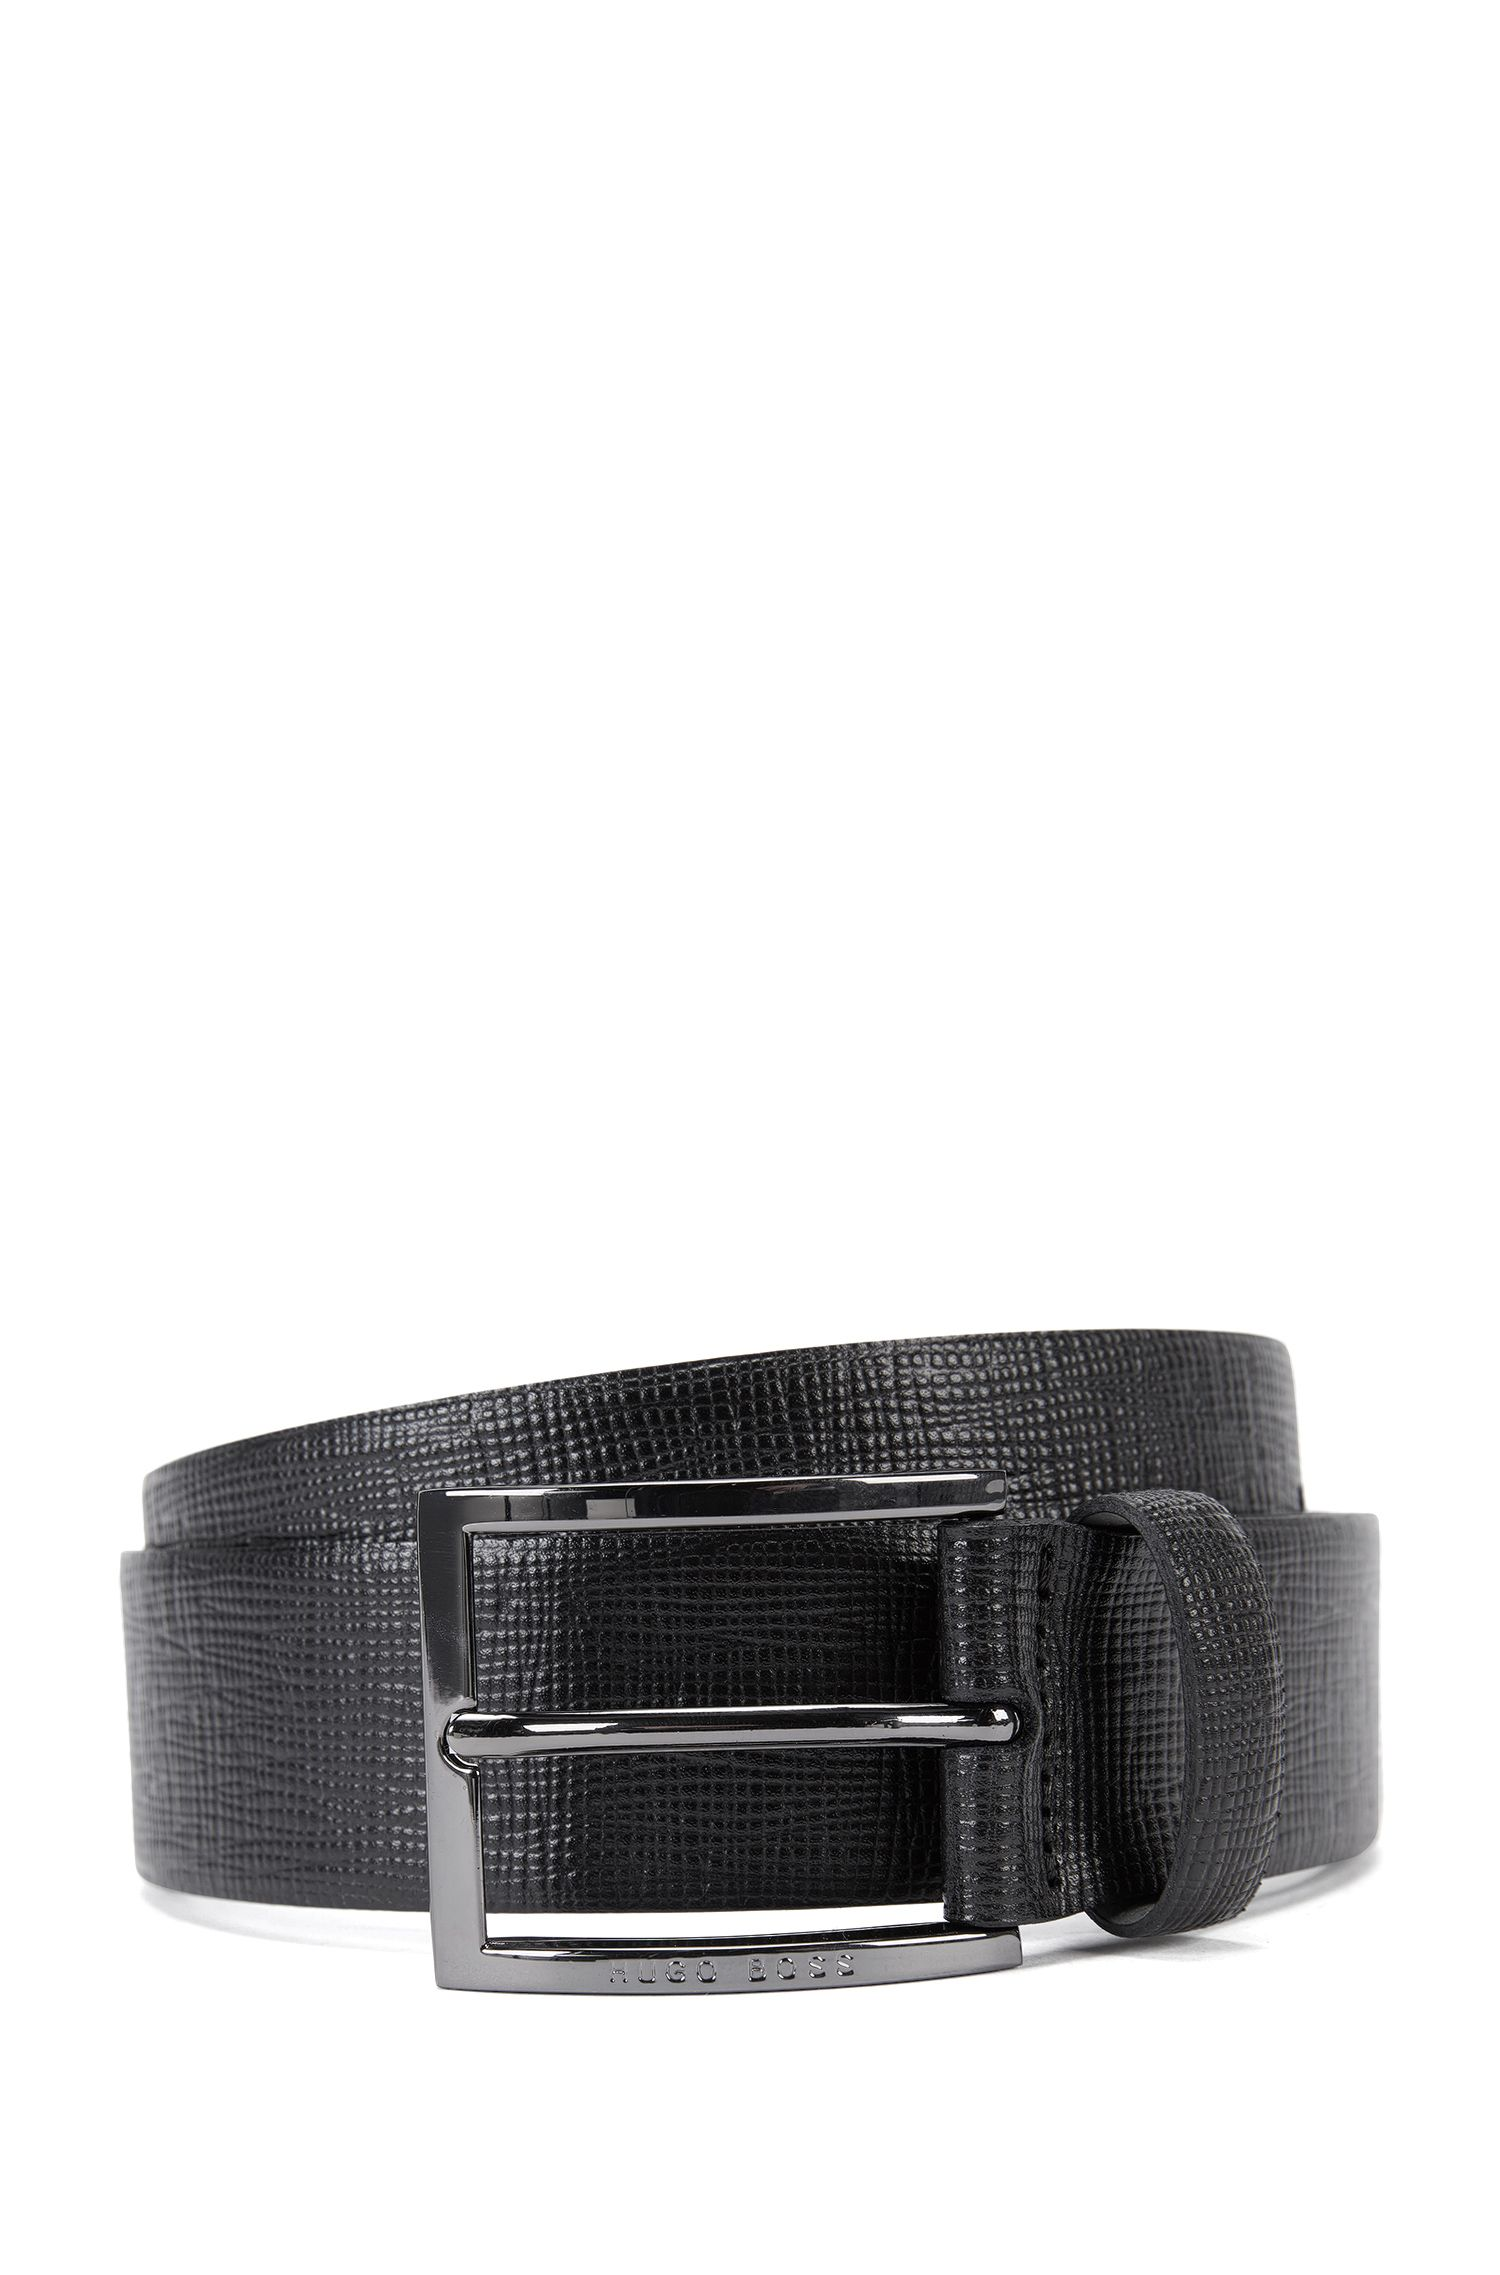 Leather belt with signature grain